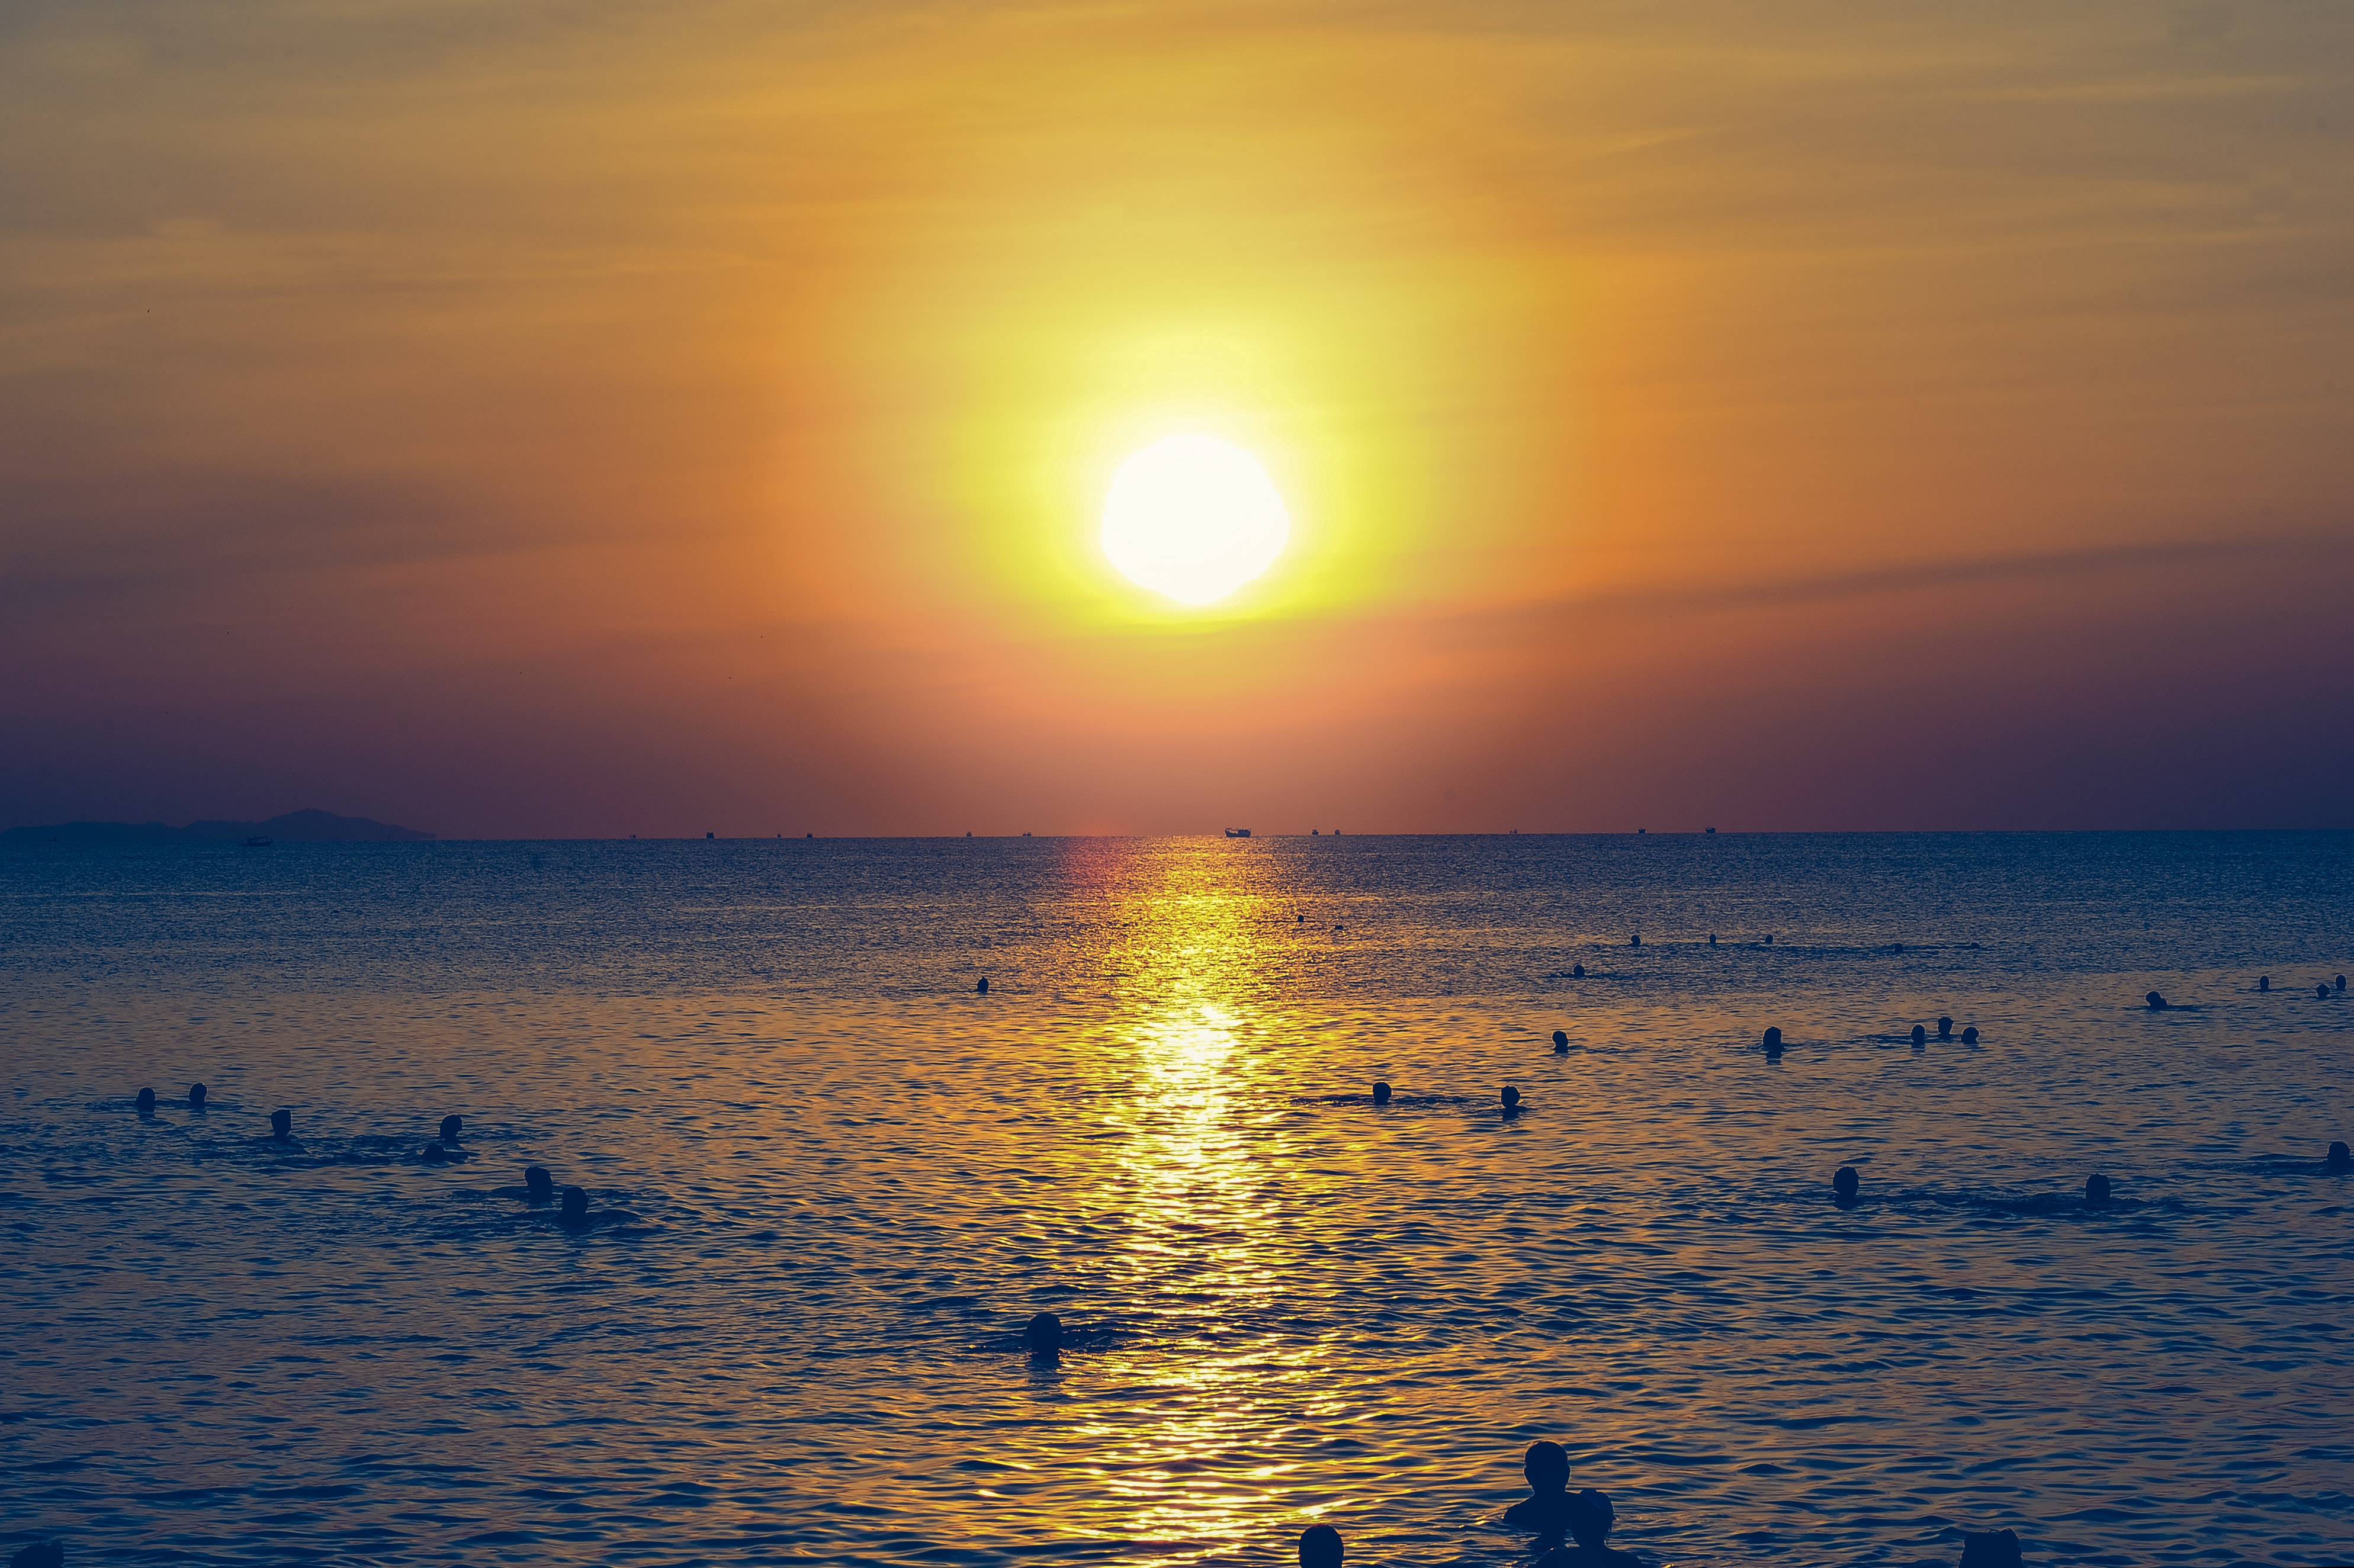 Silhouette of people swimming in the ocean during sunset photo